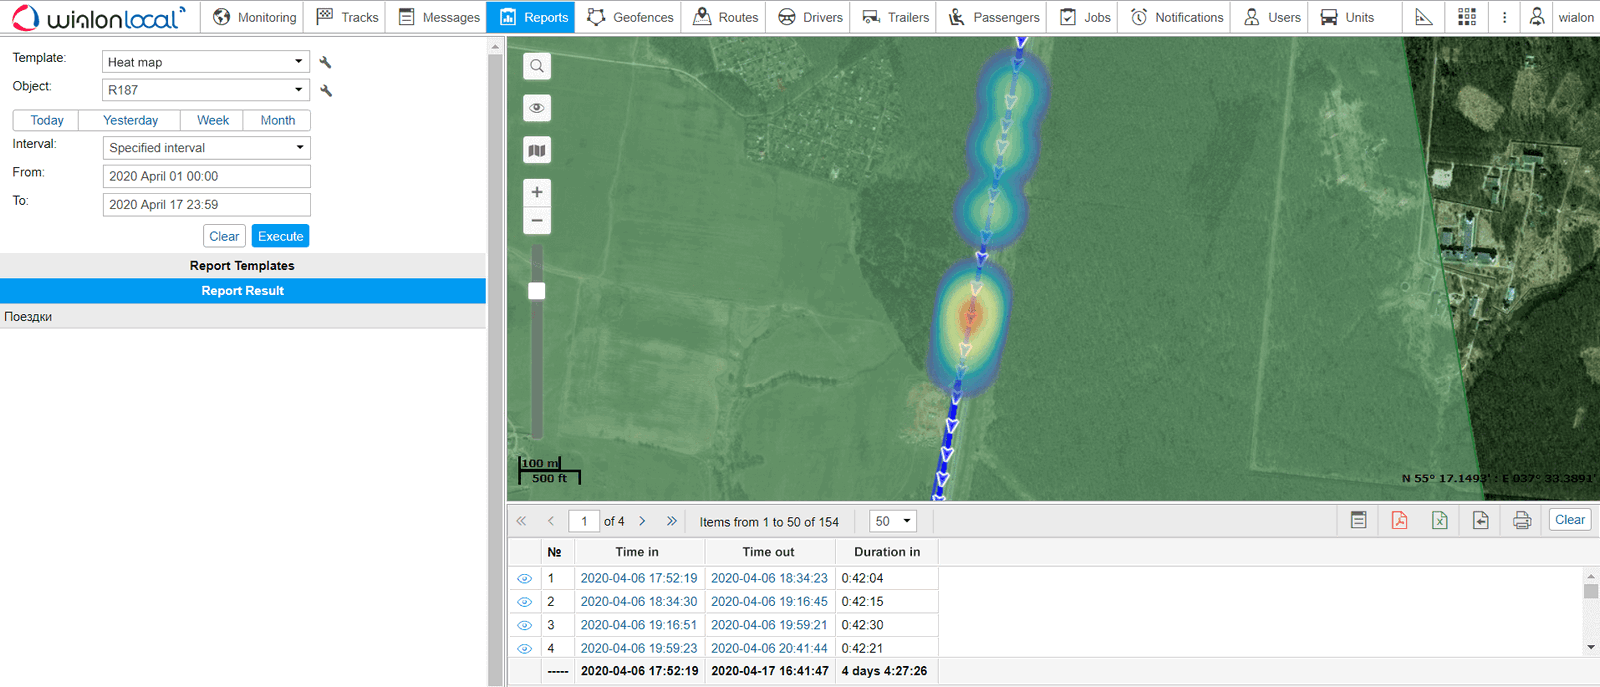 The Heat map layer in the reports in Wialon Local